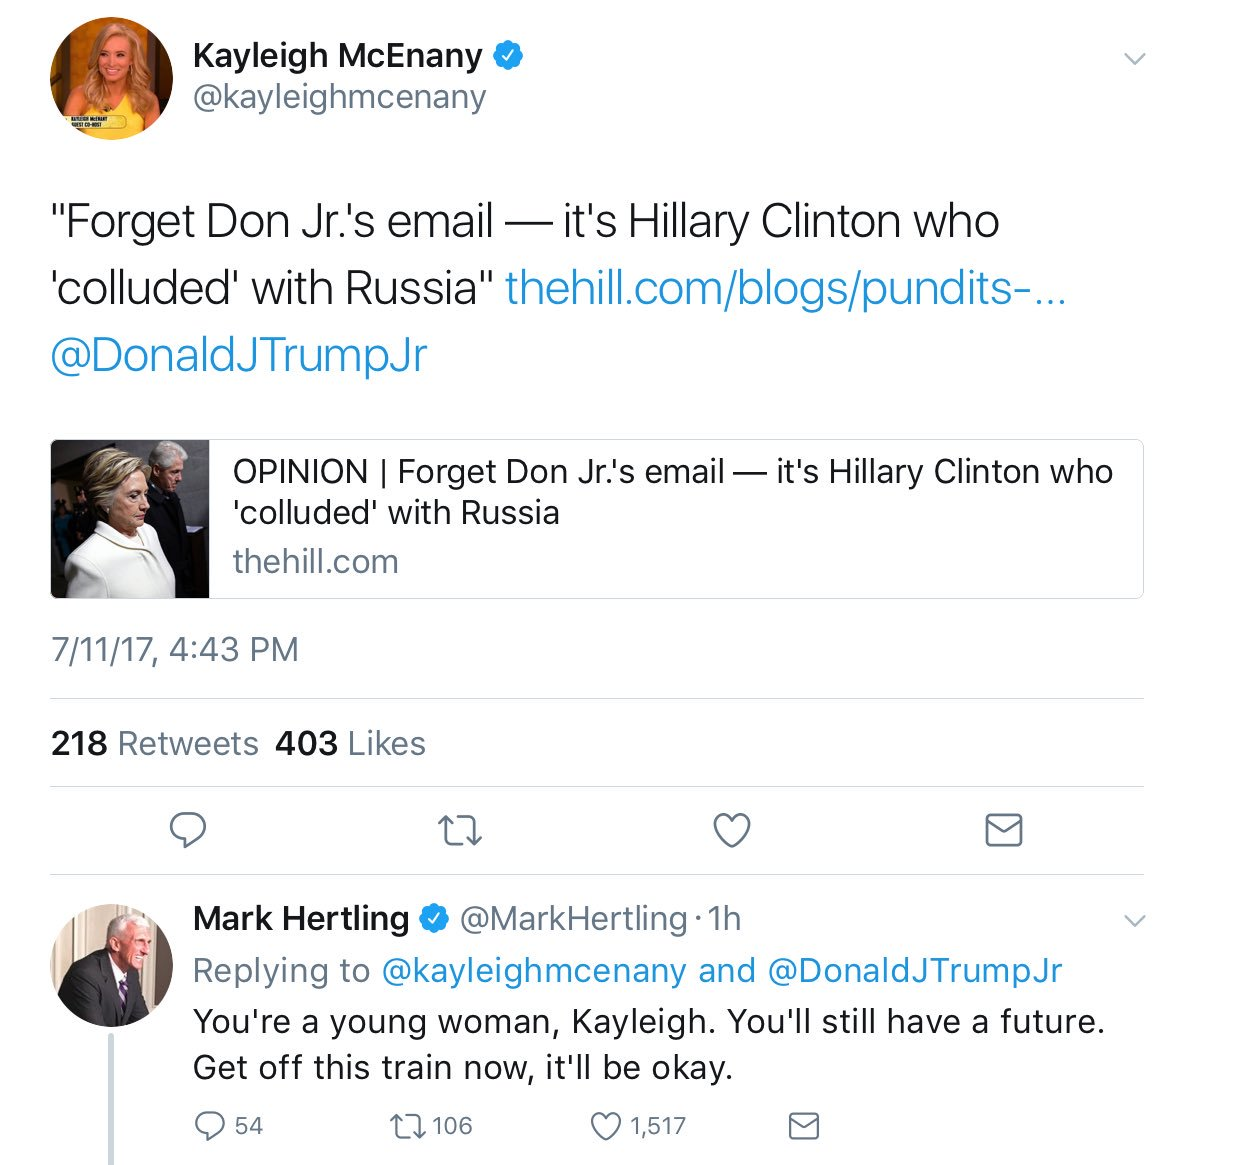 The Replies: When a respected Three Star General begs you to stop embarrassing yourself. https://t.co/M4FhazVTiJ